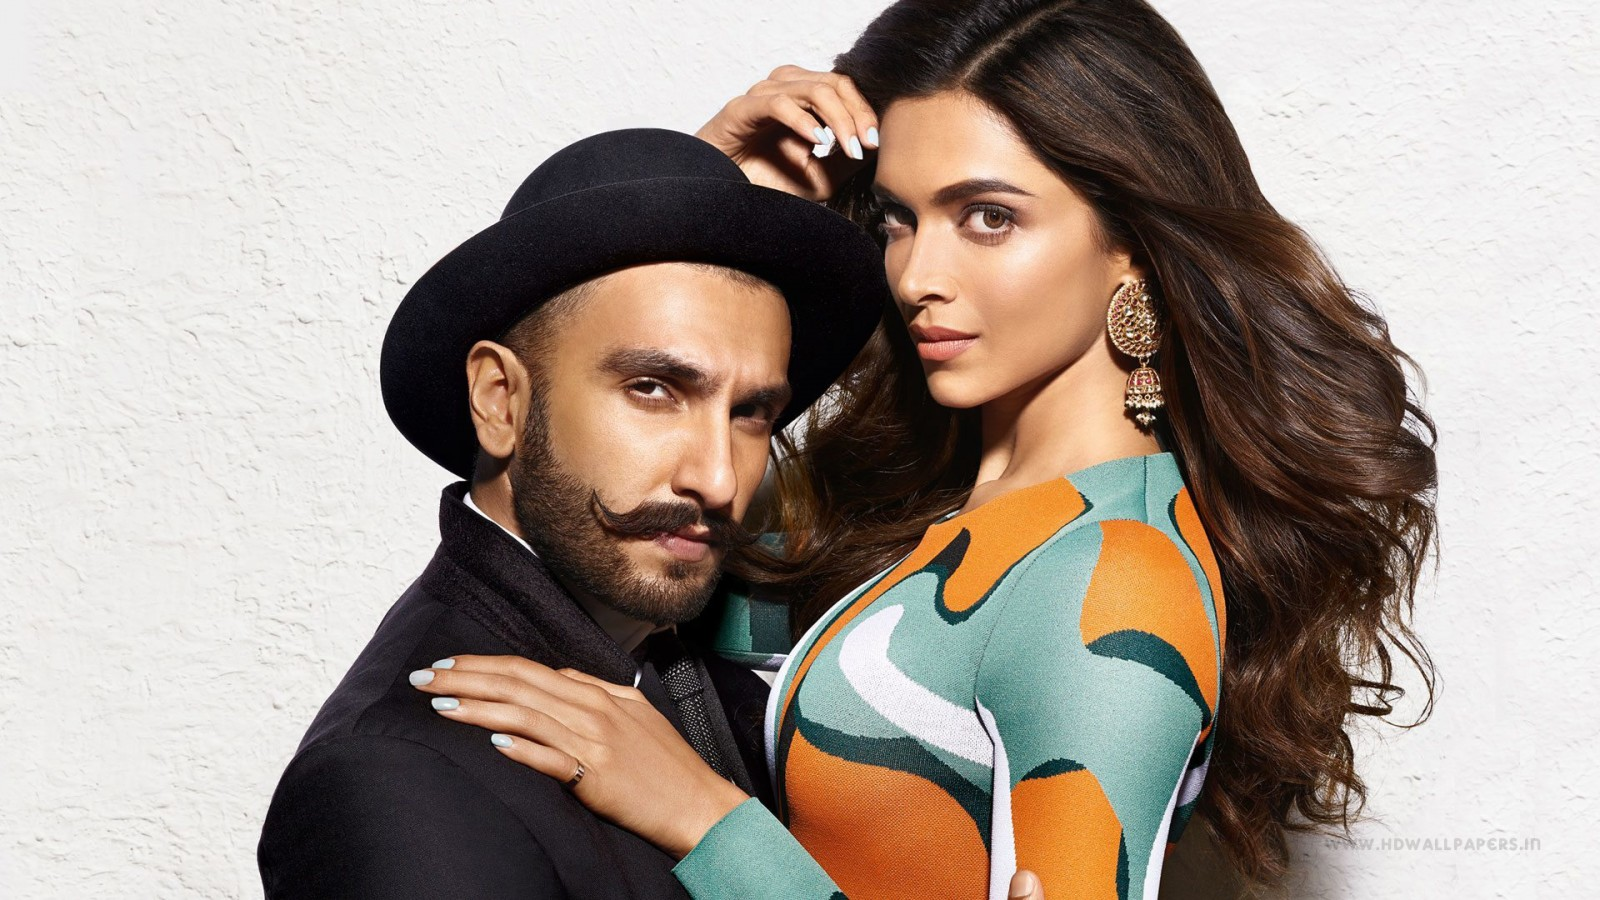 Hrithik Hd Wallpaper Ranveer Singh Deepika Padukone Wallpapers Hd Wallpapers